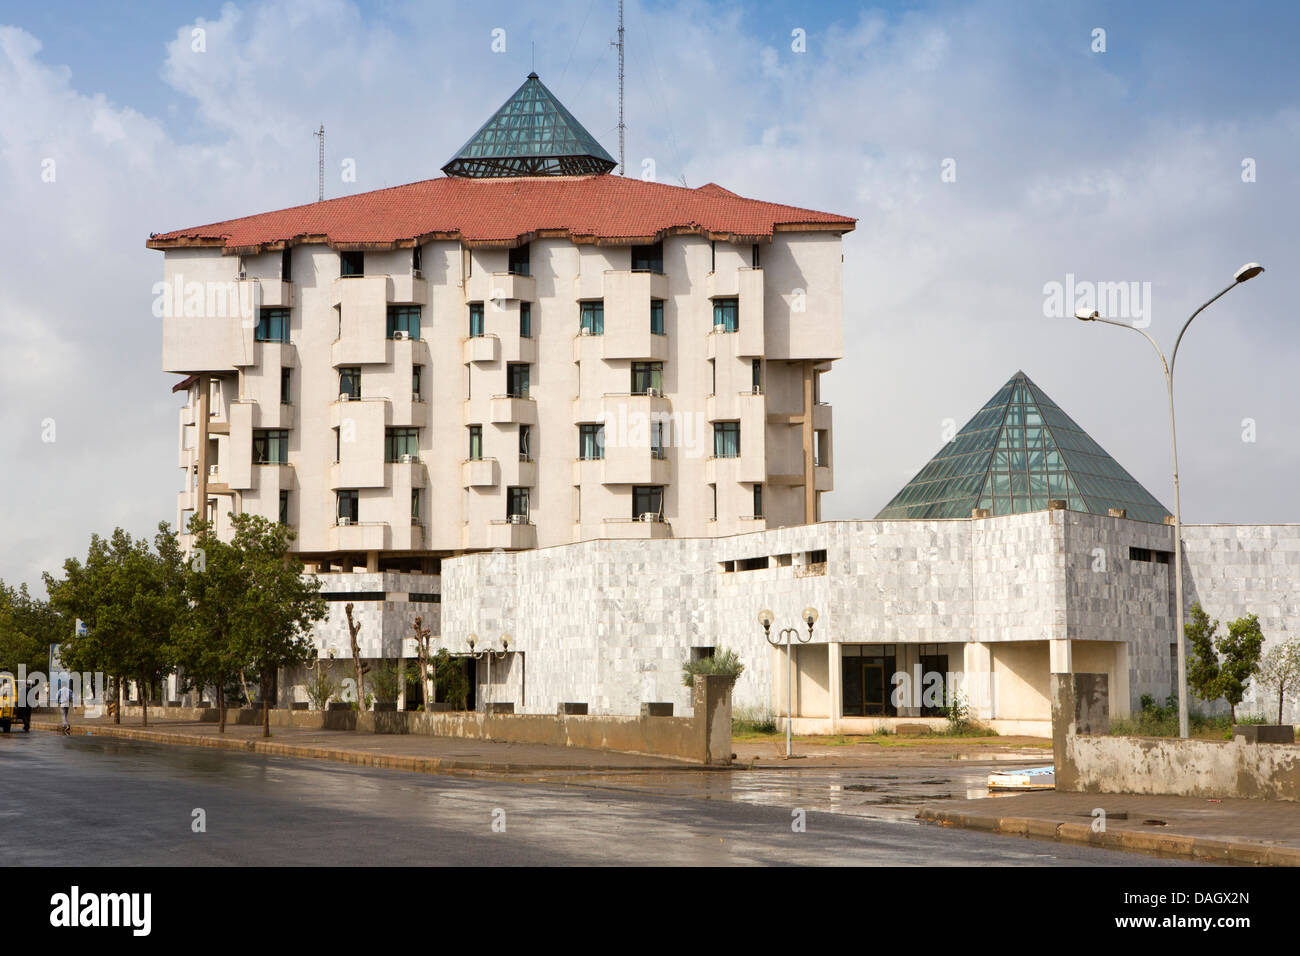 Africa, Eritrea, Massawa, Tualud, modern architecture of newly built housing development - Stock Image